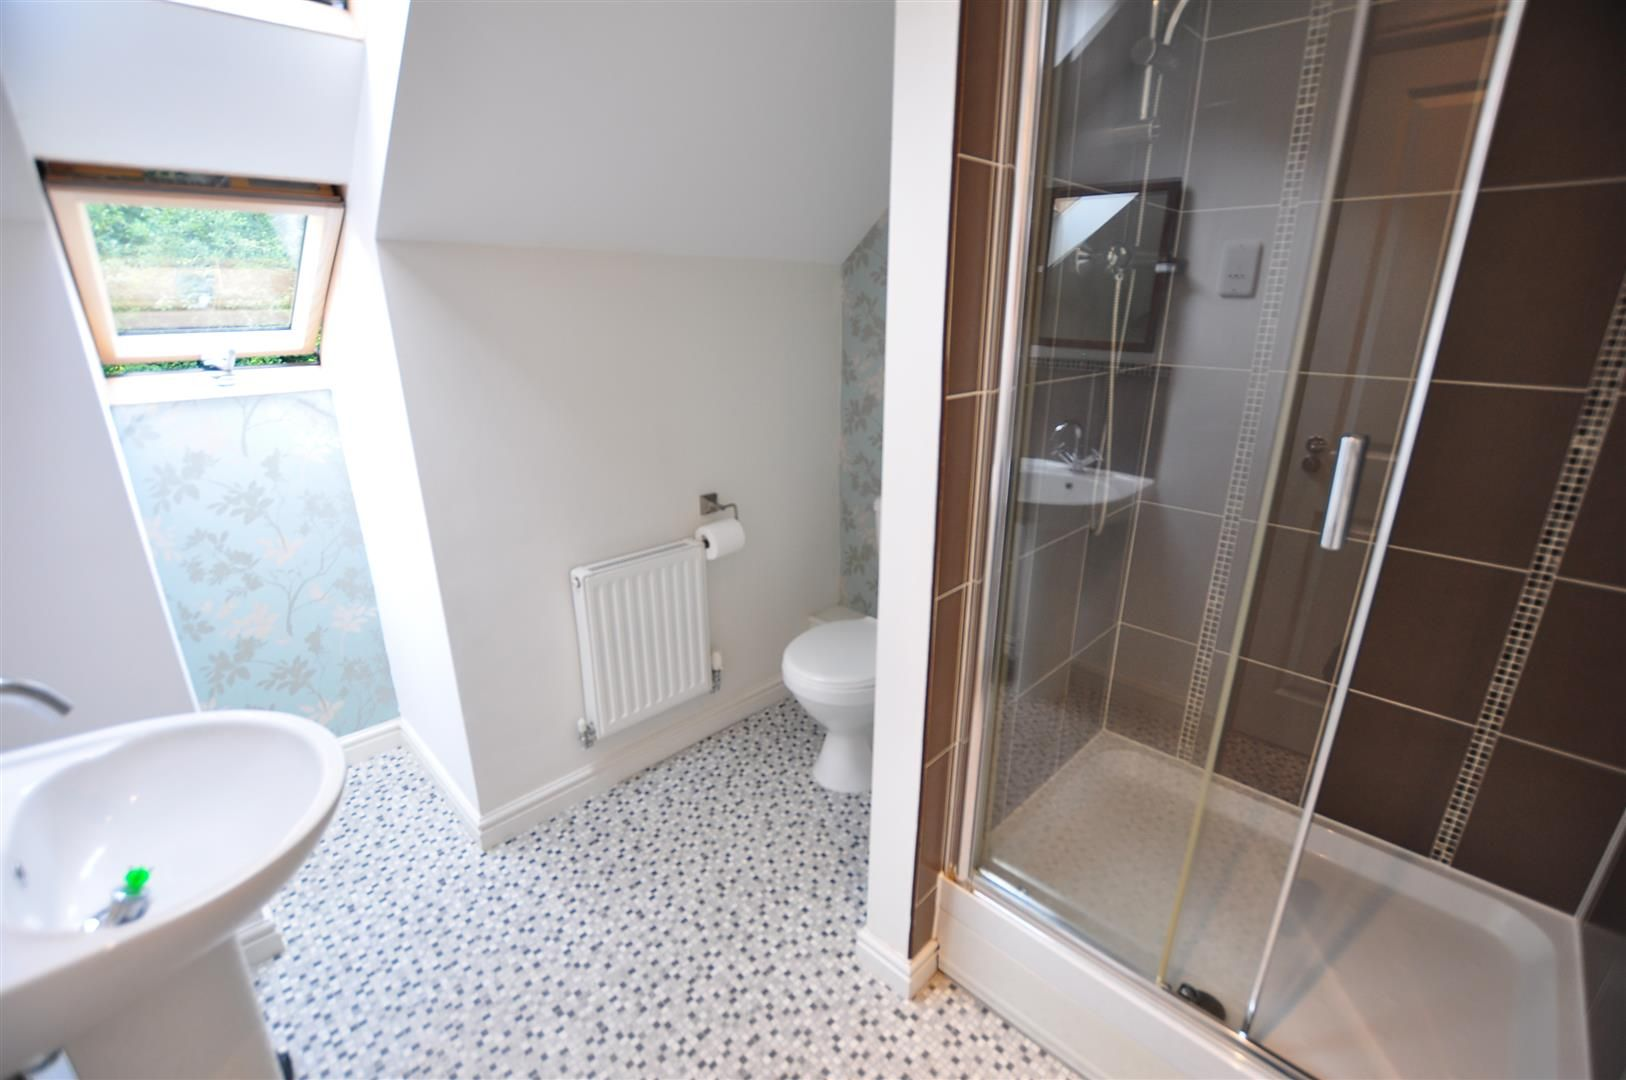 4 bed end-of-terrace for sale 10